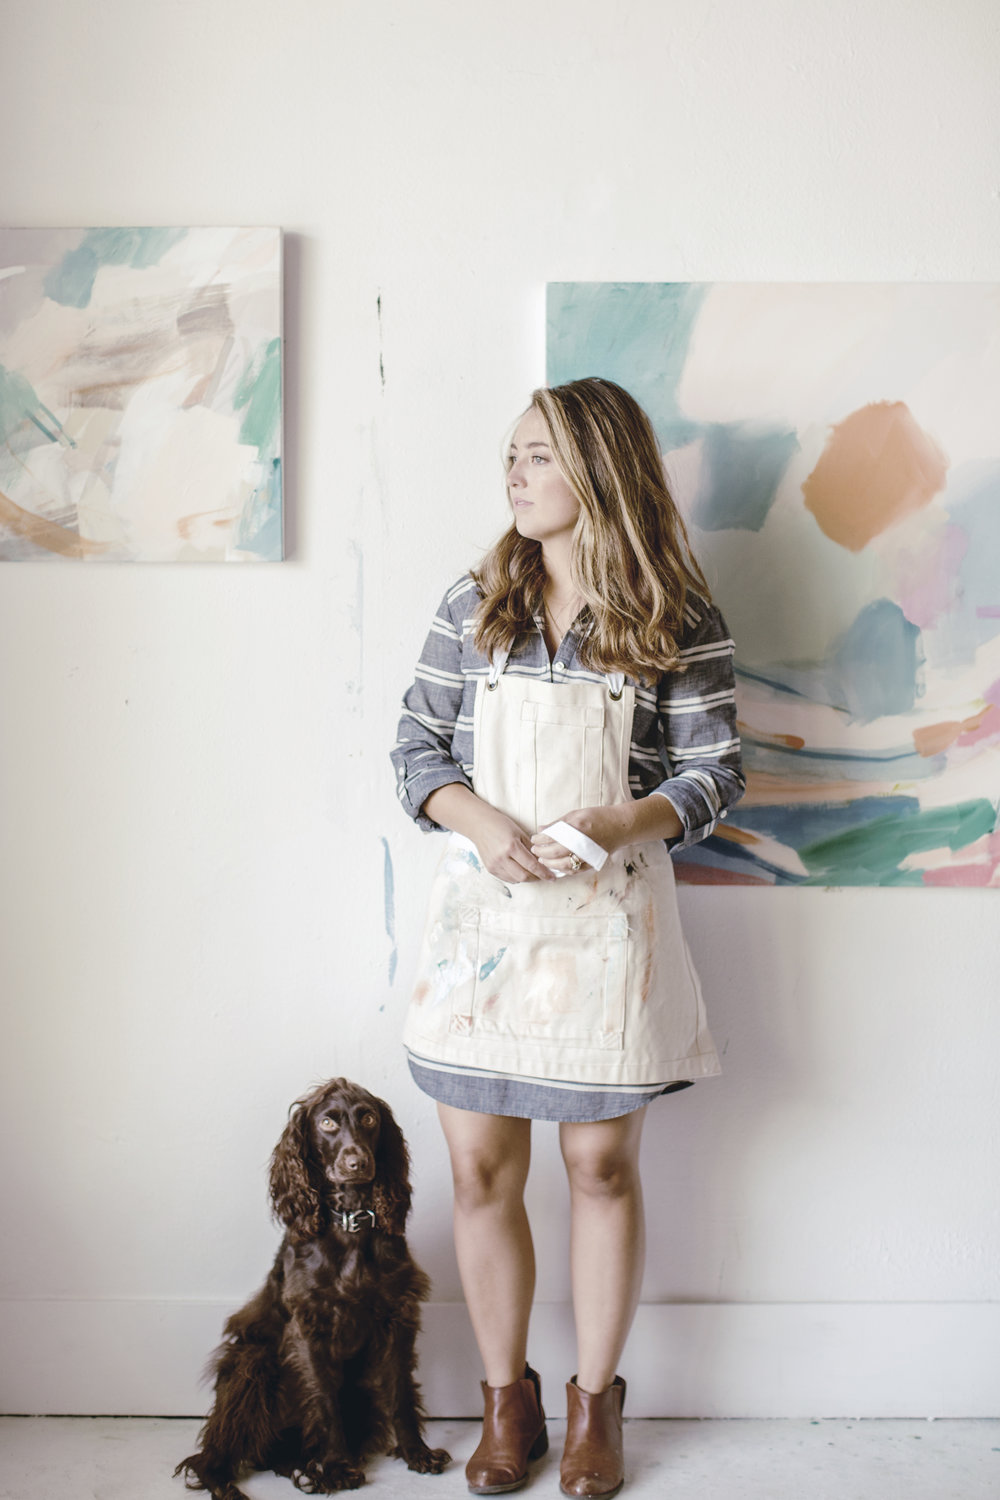 MEET ARTIST BRITT BASS TURNER